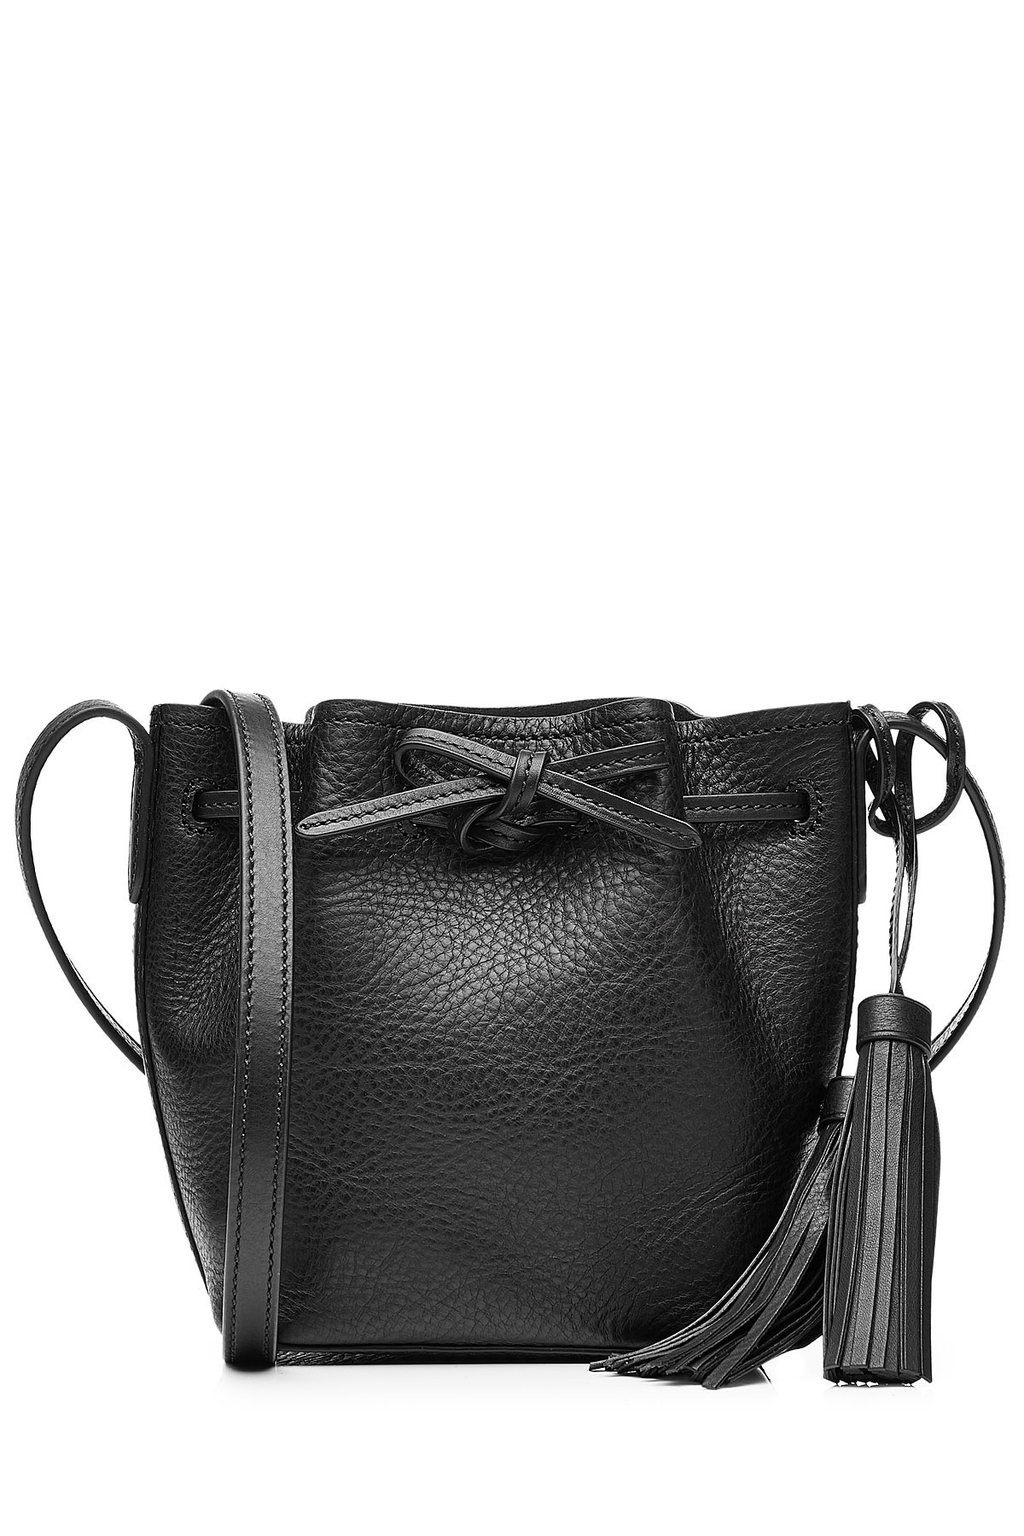 Bucket Shoulder Bag With Tassels Black - predominant colour: black; occasions: casual, creative work; type of pattern: standard; style: shoulder; length: shoulder (tucks under arm); size: standard; material: leather; pattern: plain; finish: plain; season: s/s 2016; wardrobe: investment